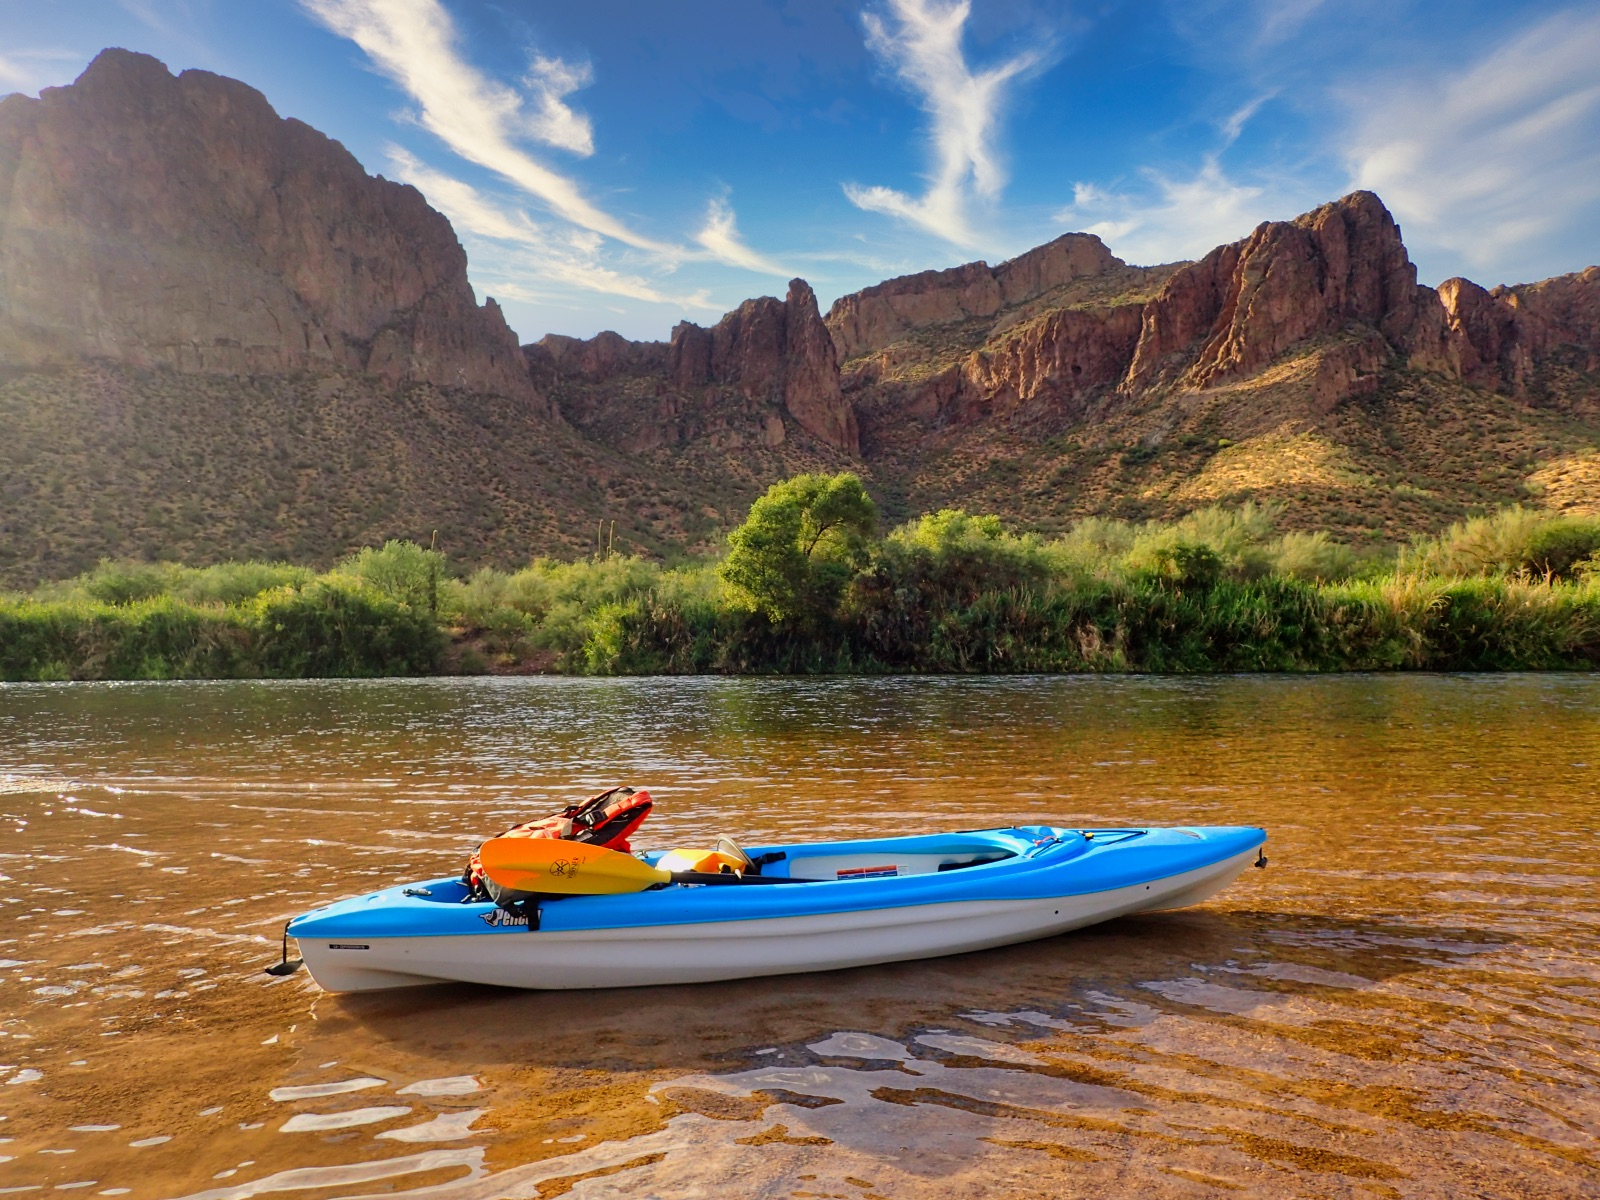 Blue kayak in shallow water with cliffs in background